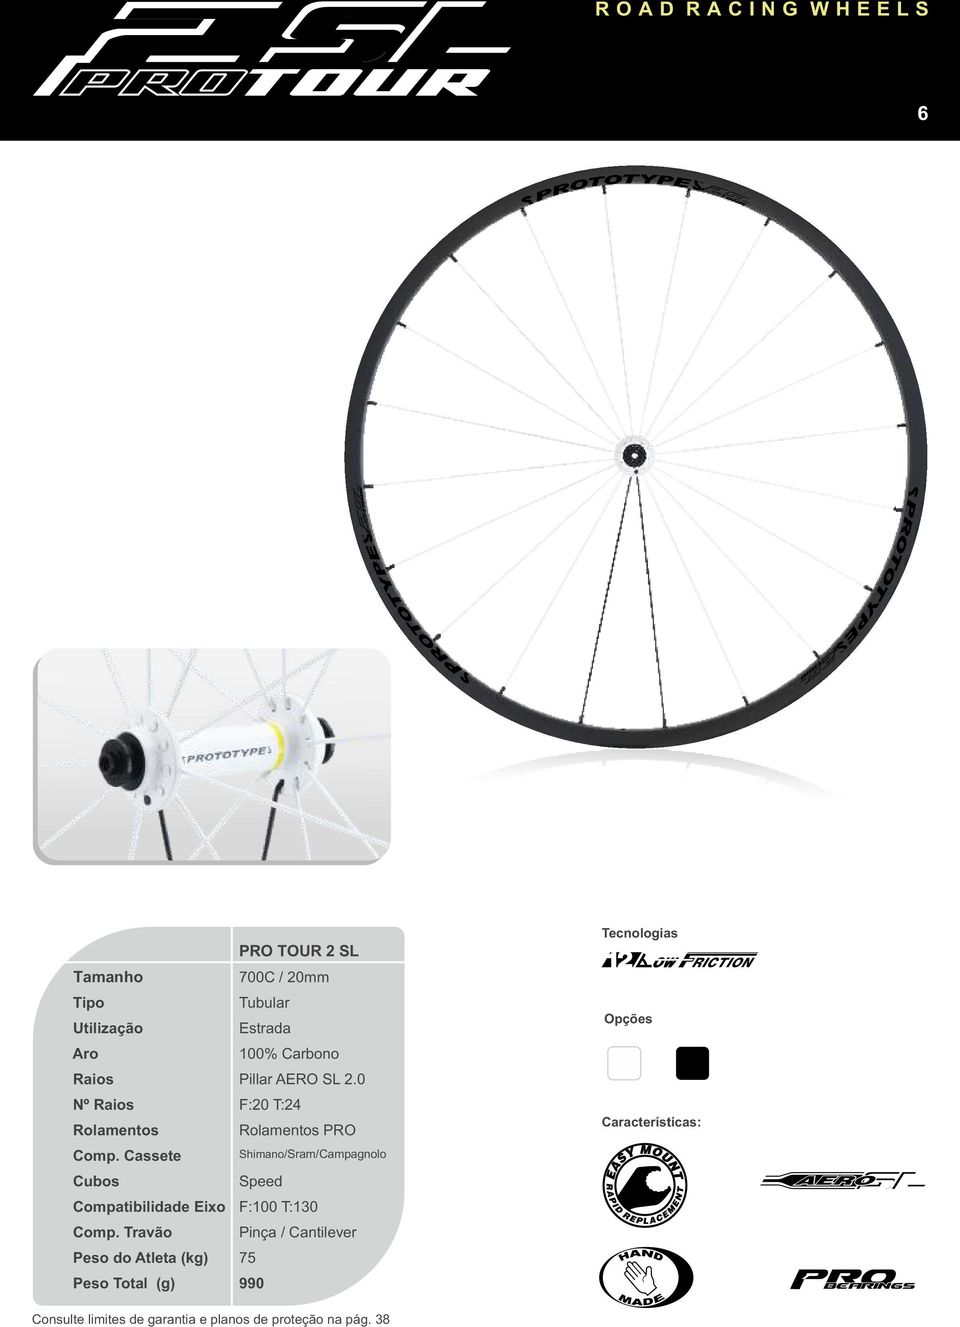 Cassete Shimano/Sram/Campagnolo Cubos Speed Compatibilidade Eixo F:100 T:130 Comp.